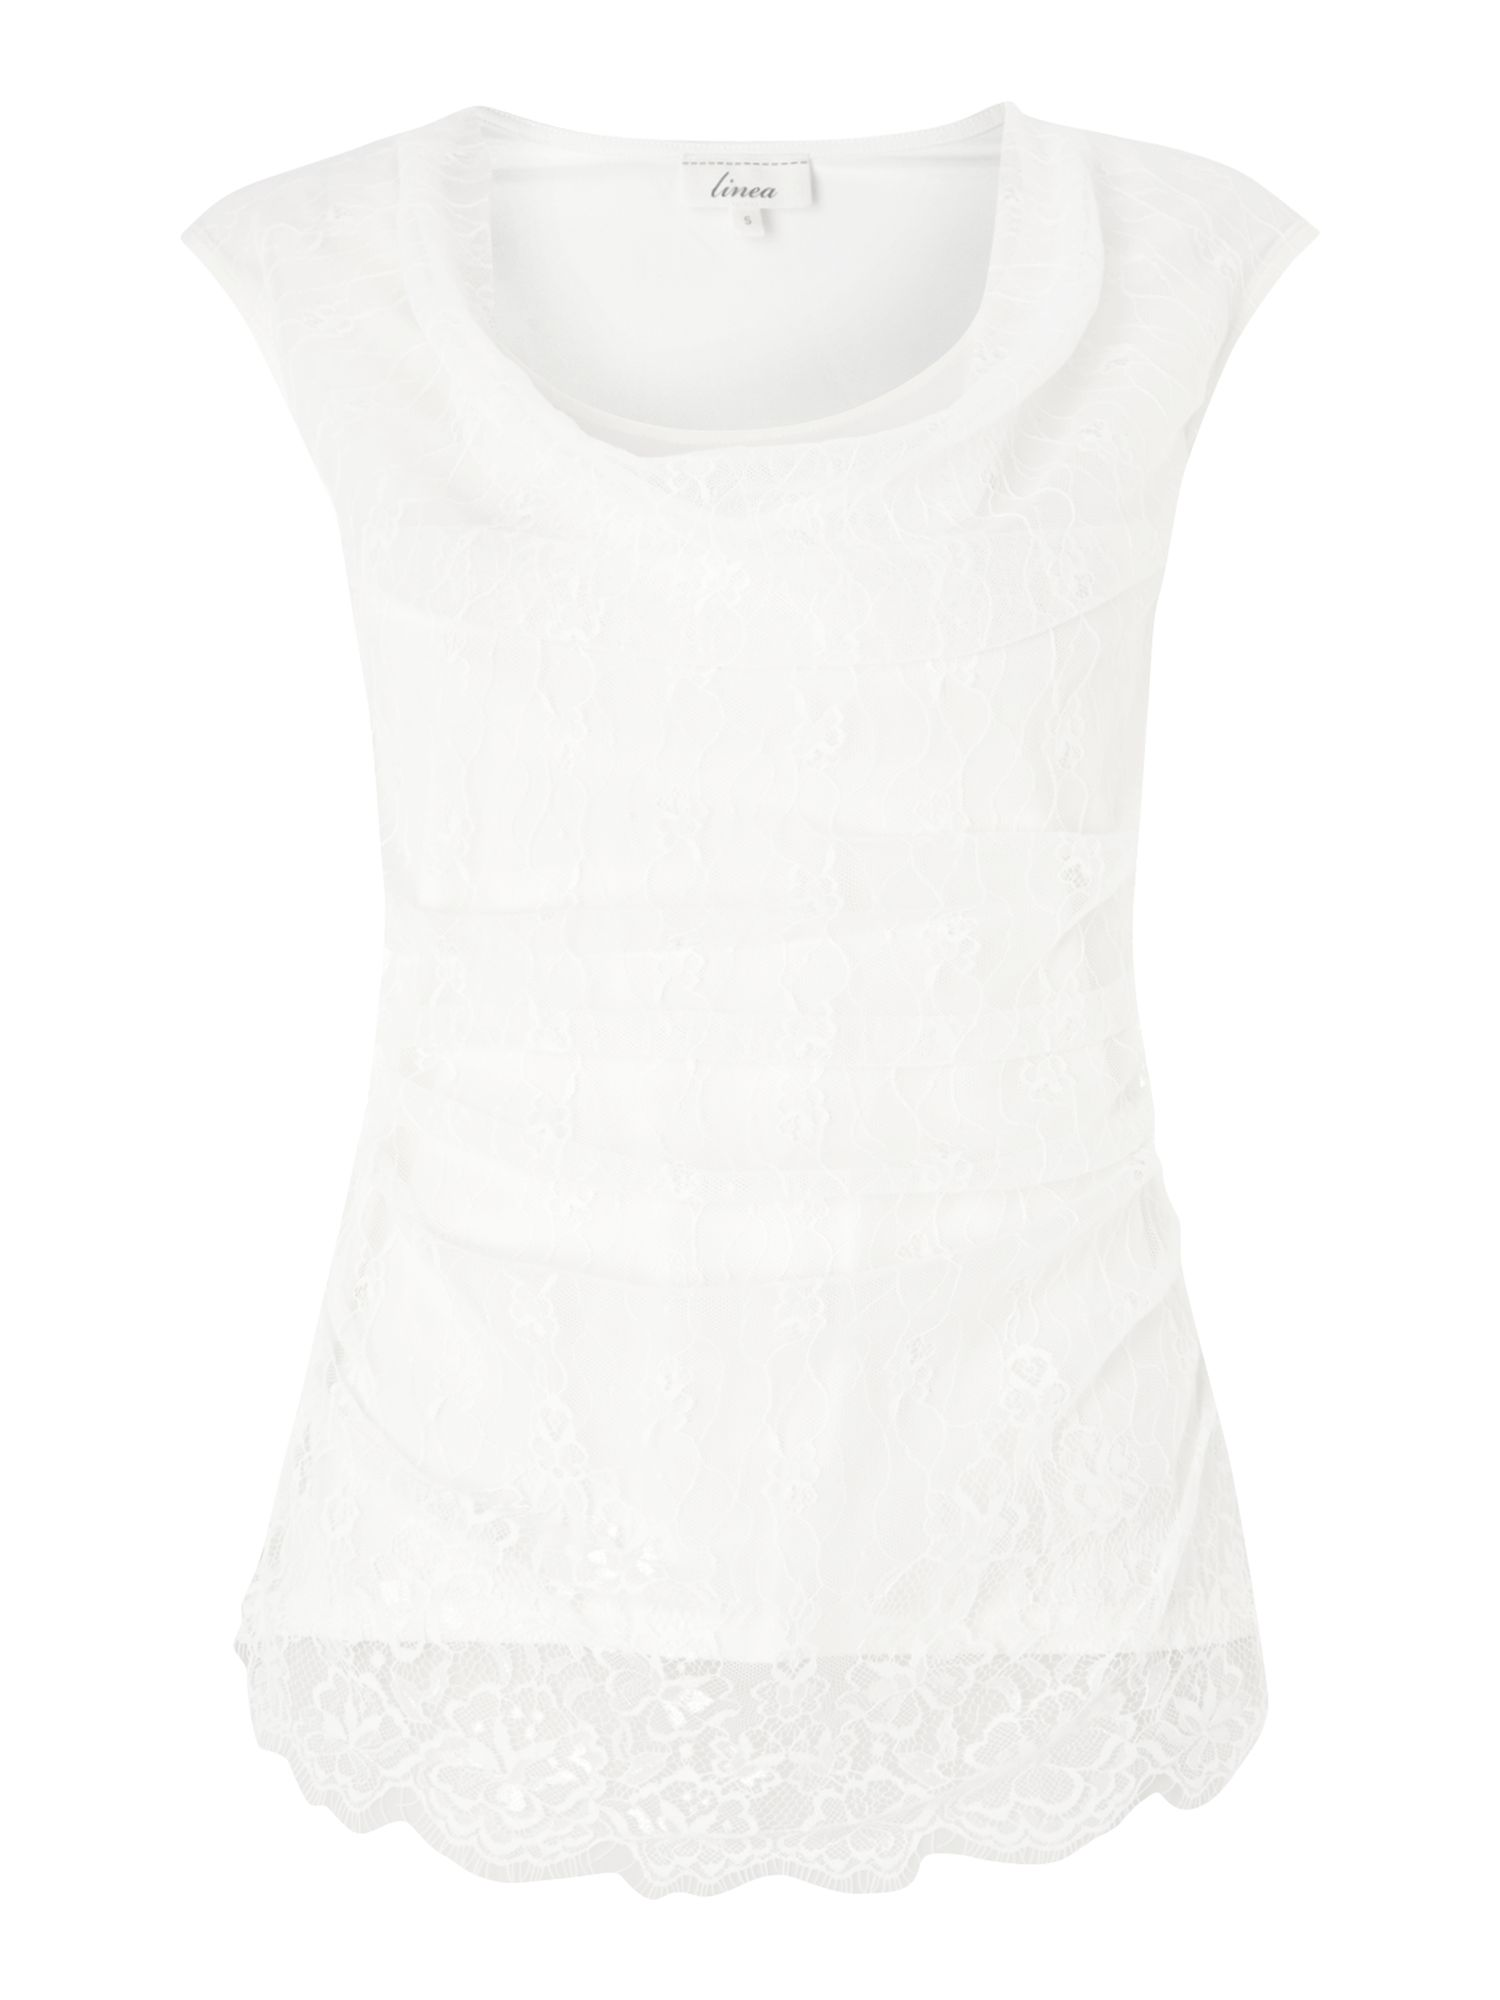 Ruby lace front jersey top